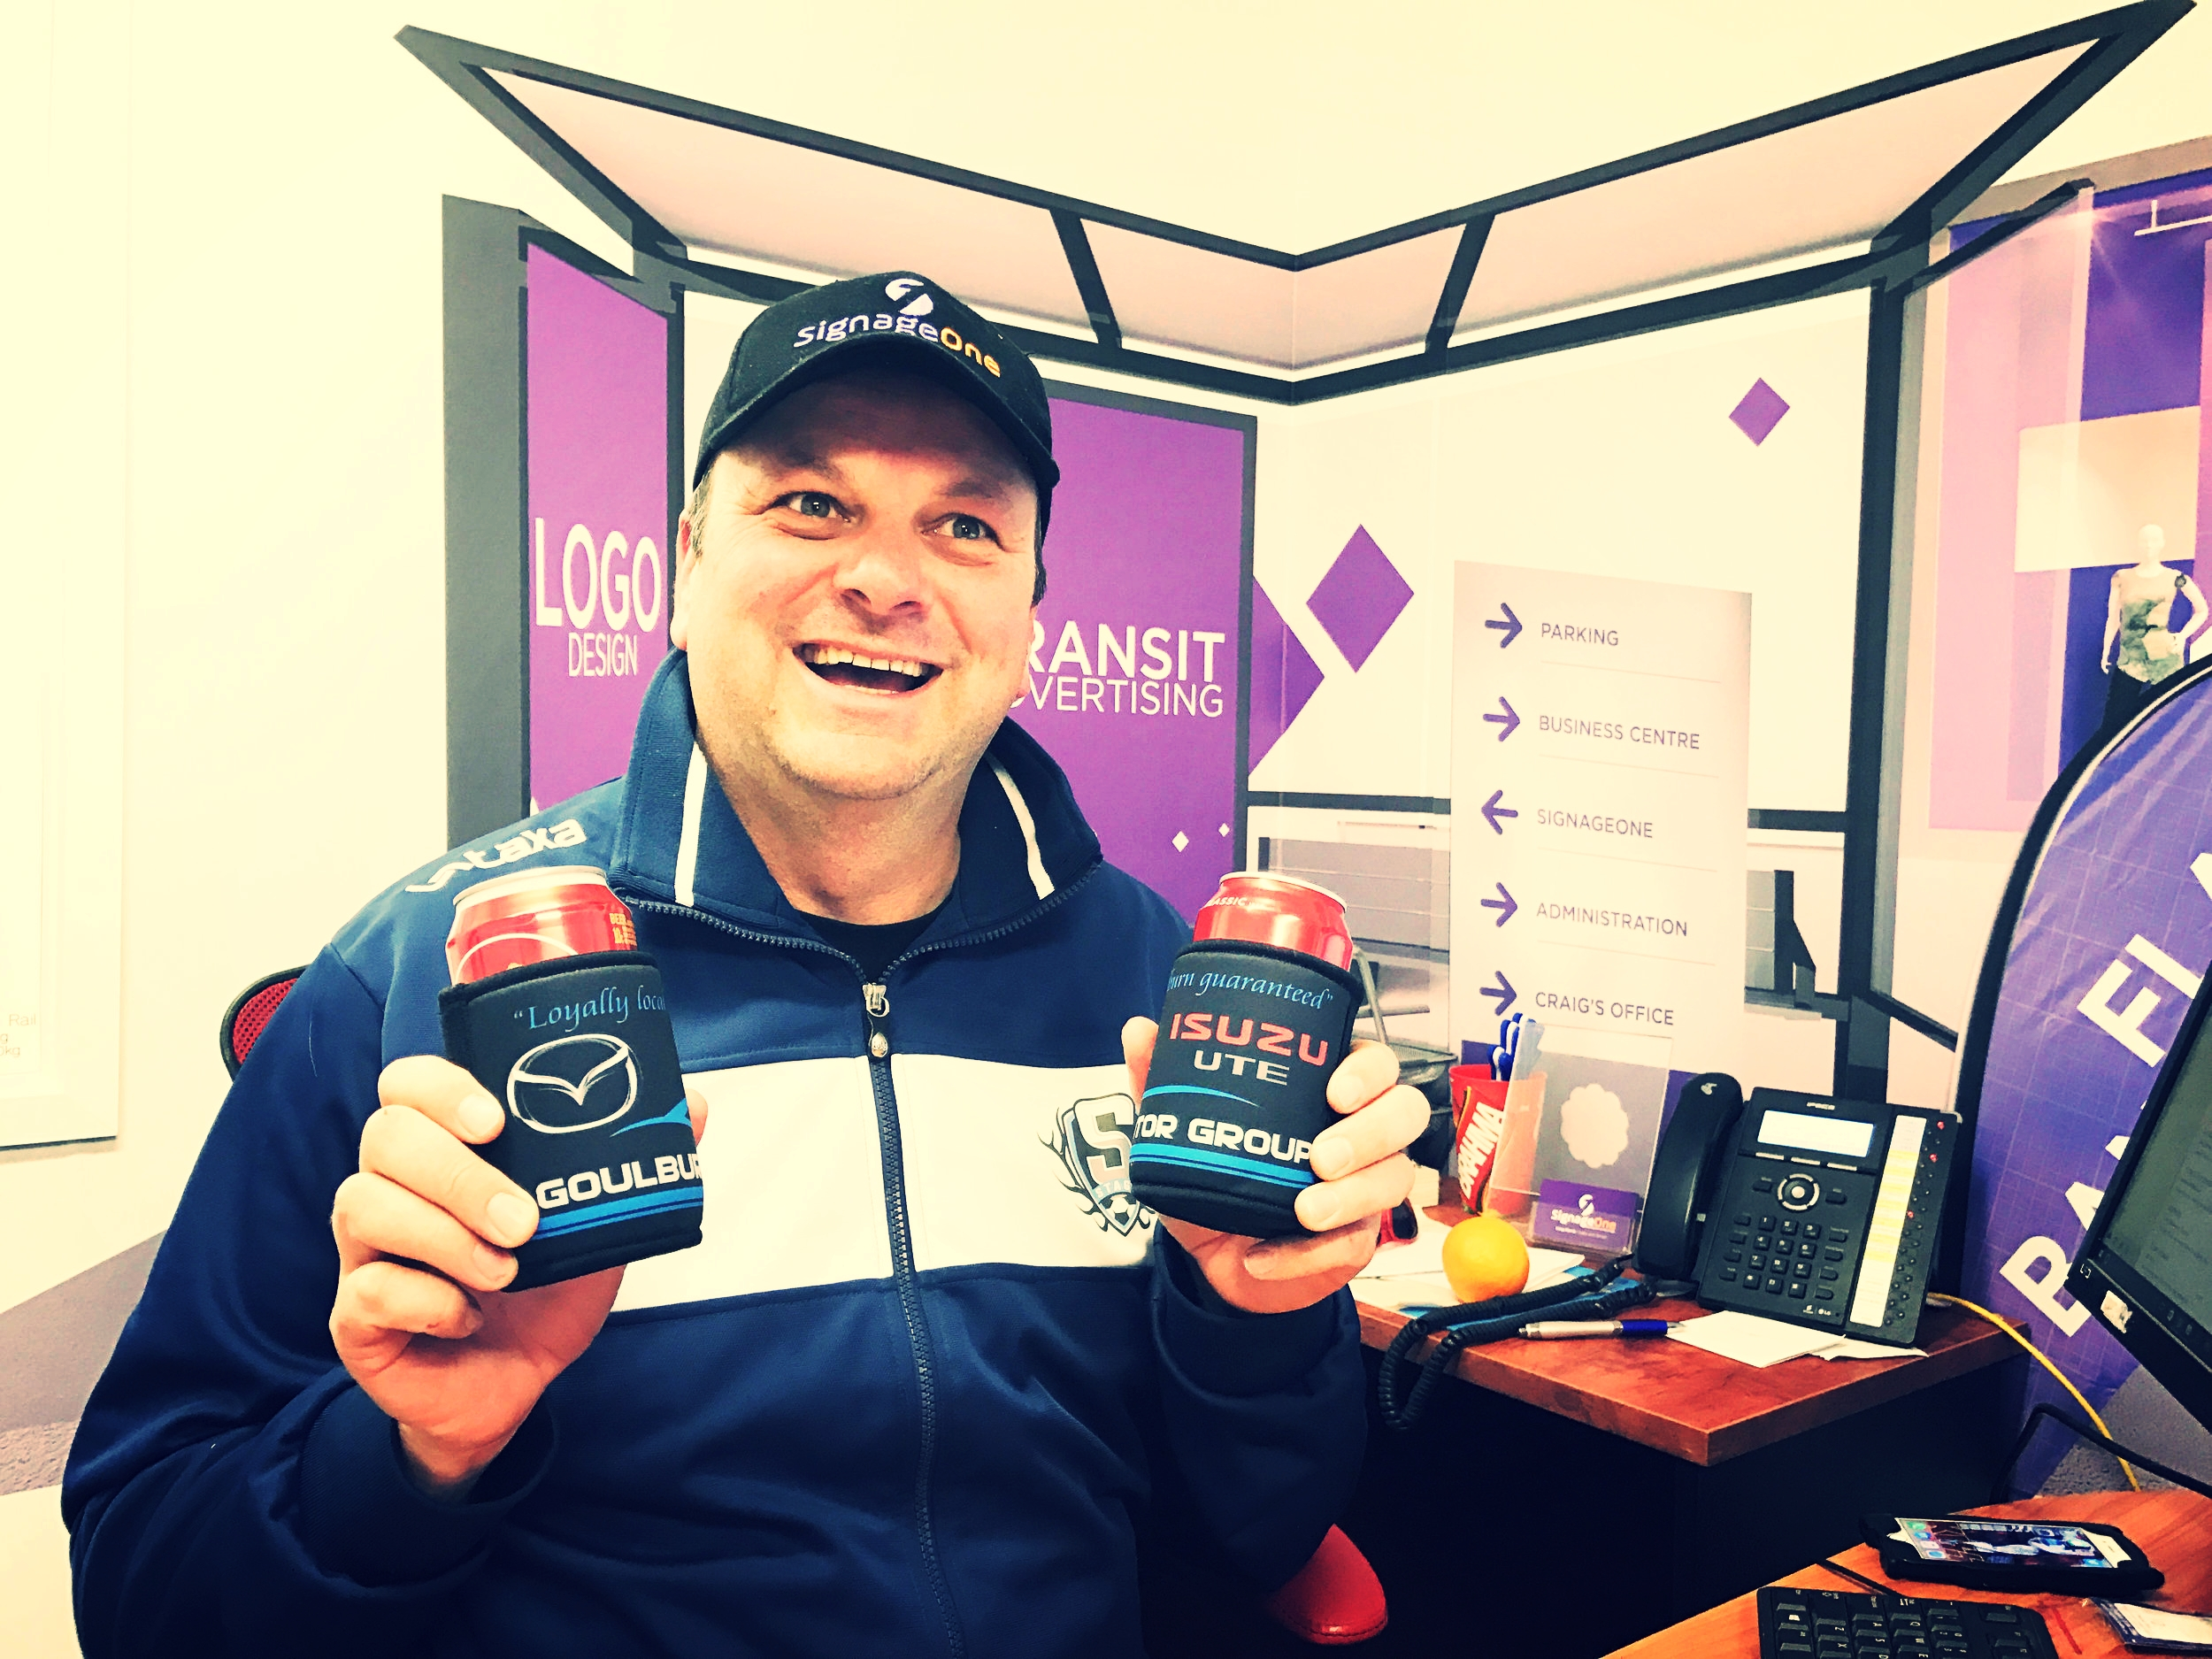 Stubby Holders   Craig Norris enjoyed this moment - finding his stubby coolers full!